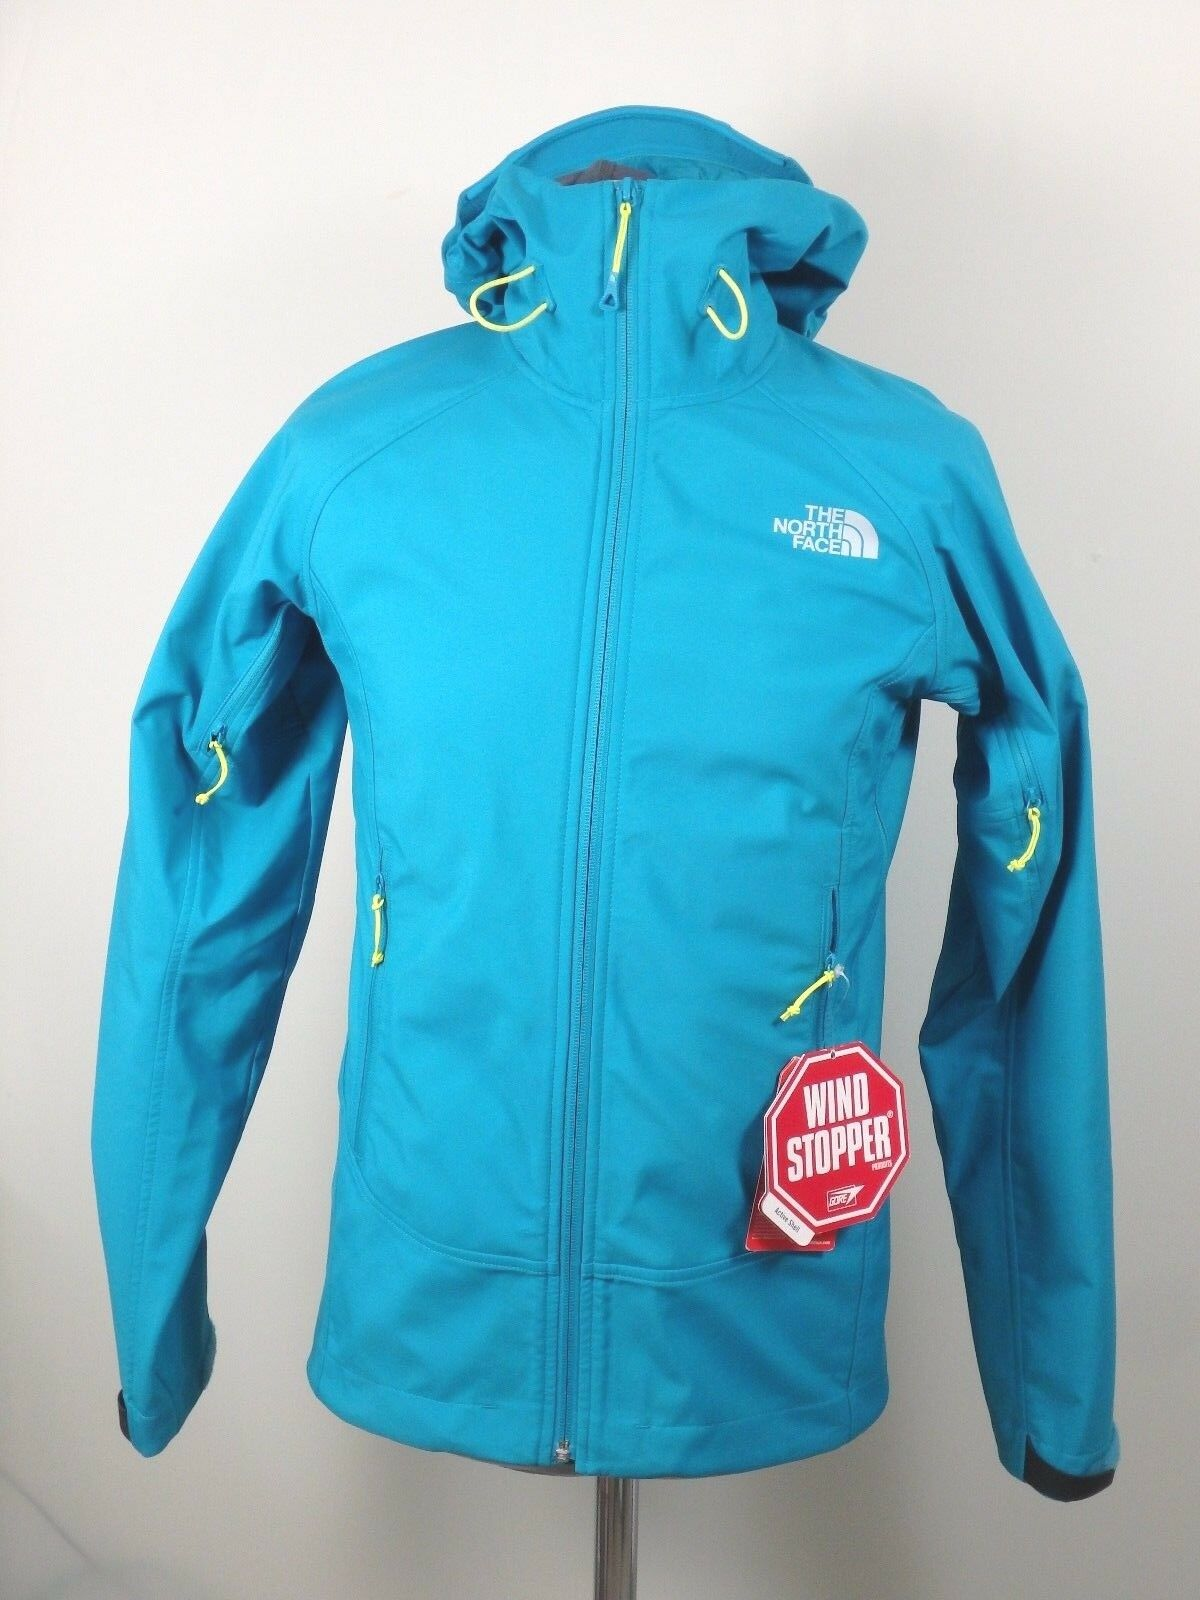 The North Face Valkyrie Softshell outdoor chaqueta señores talla S P turquesa